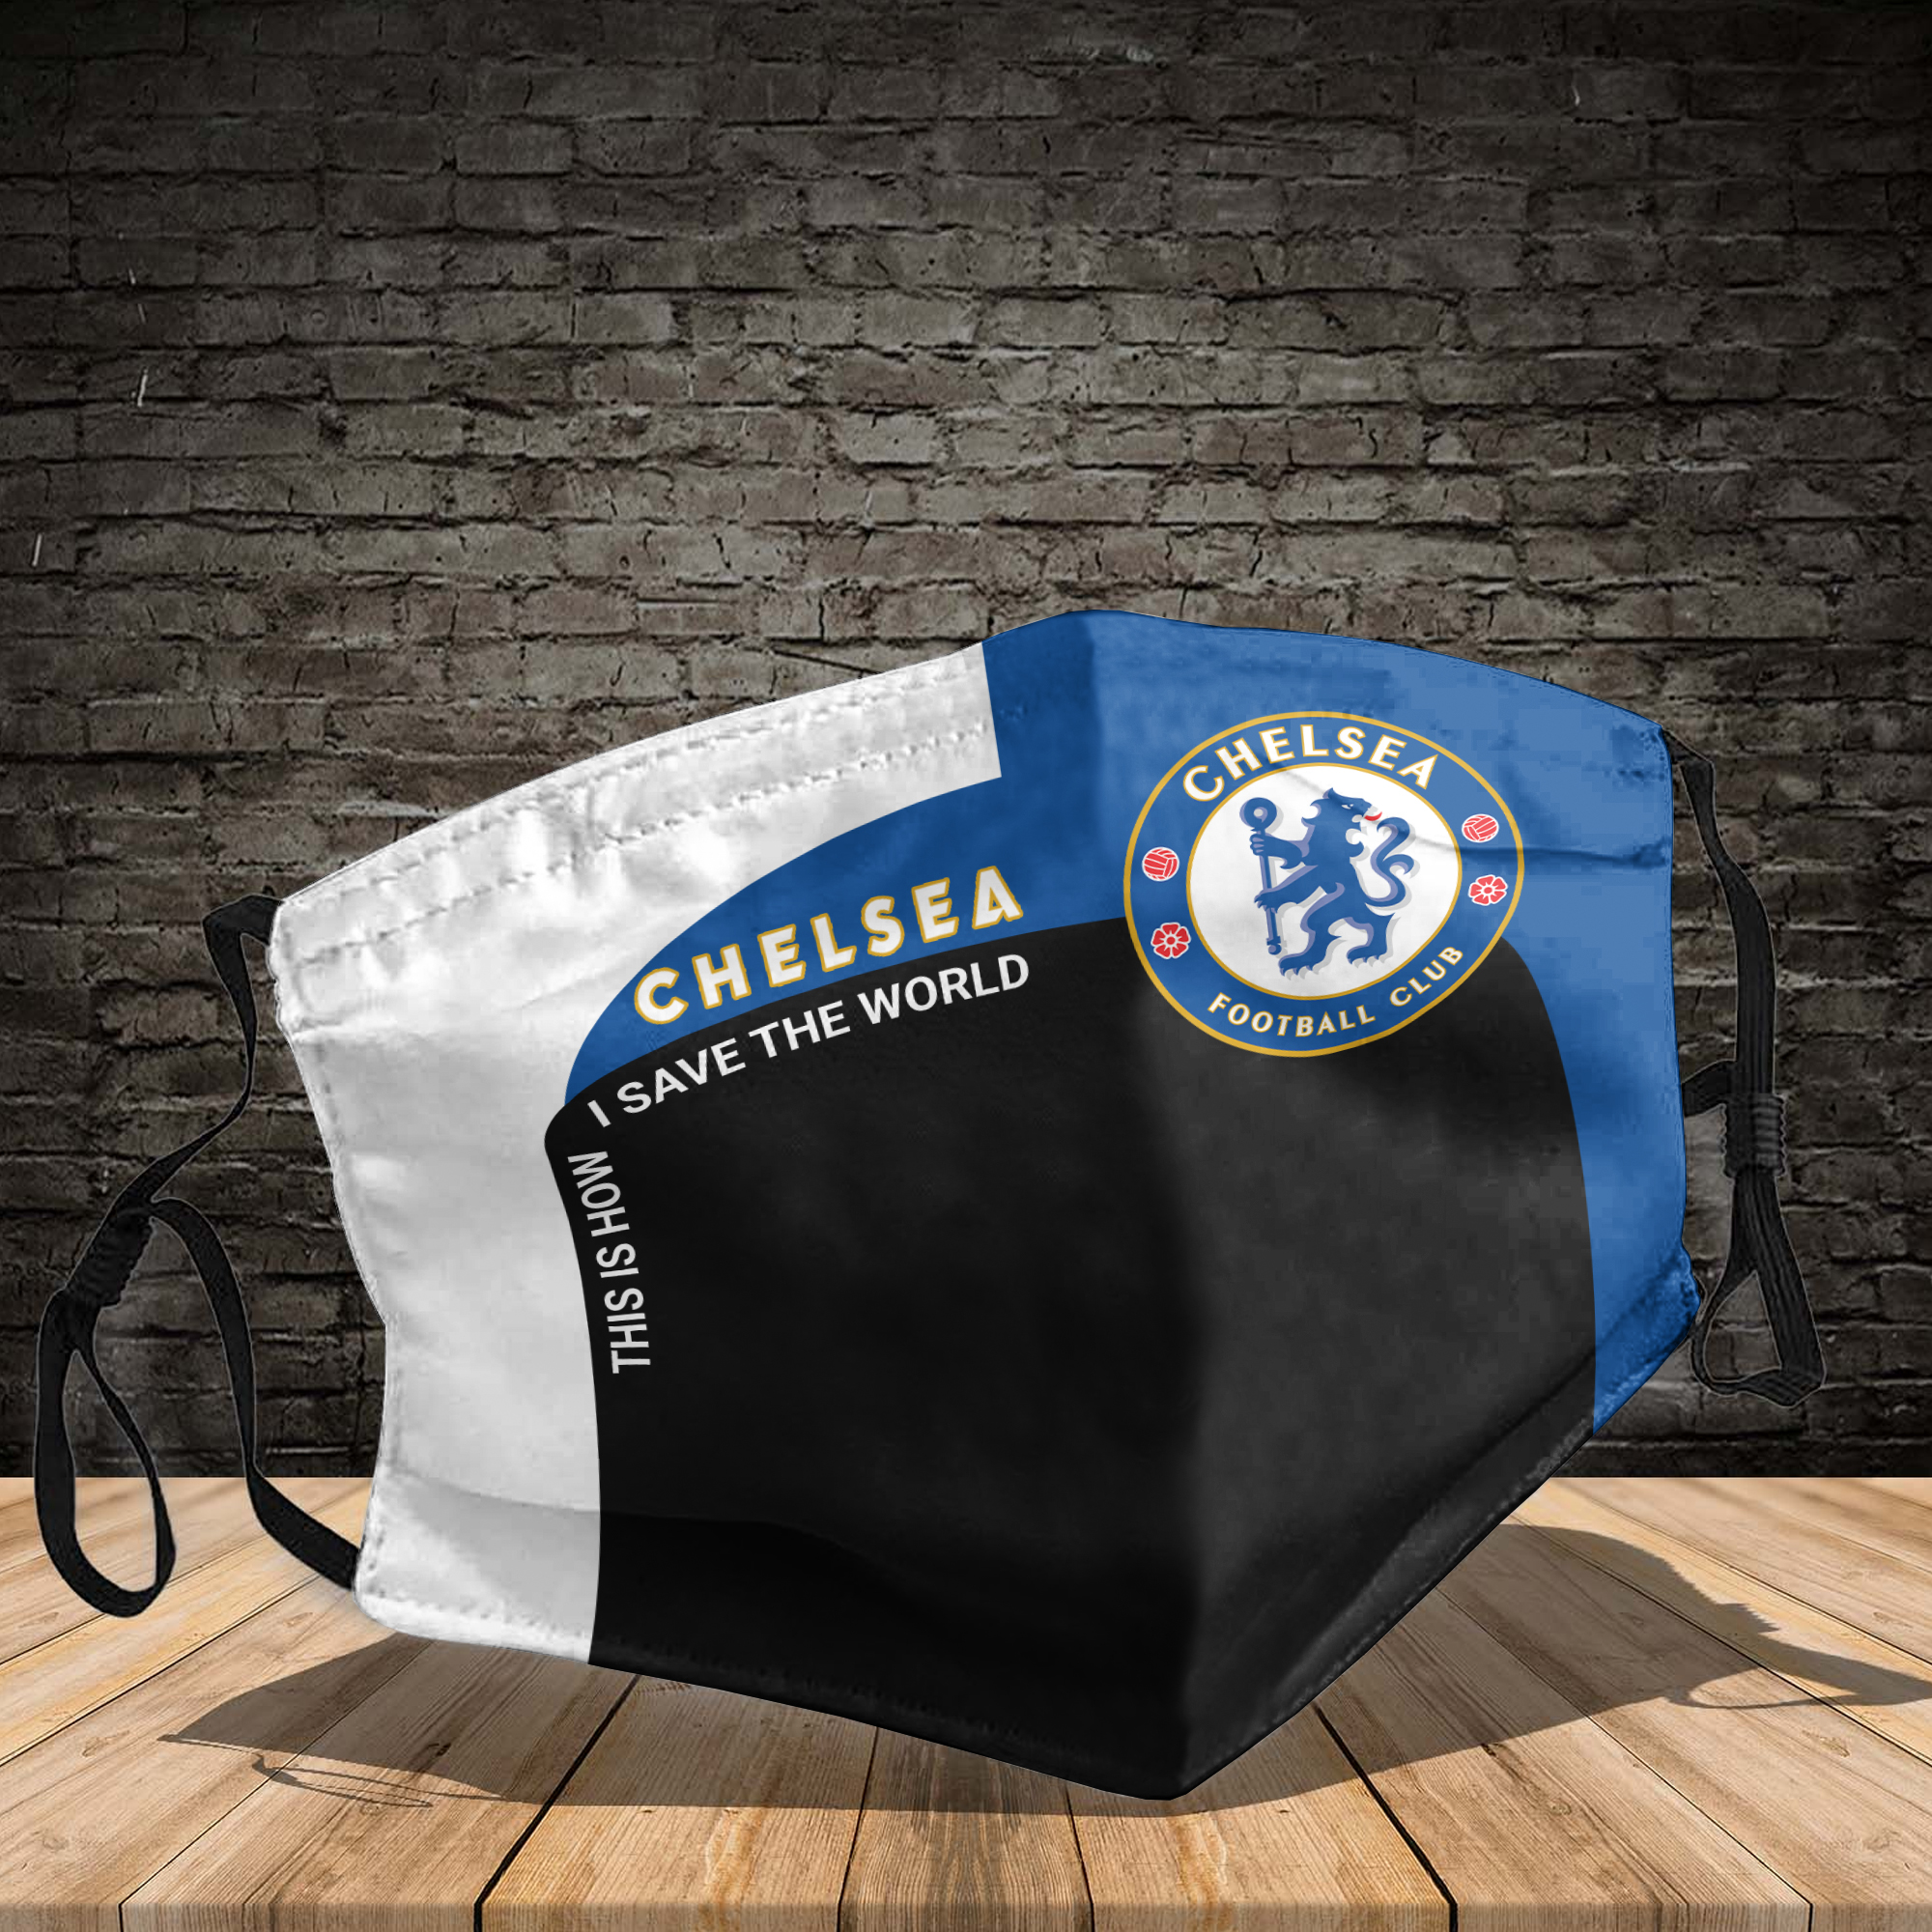 Chelsea football club this is how I save the world face mask1